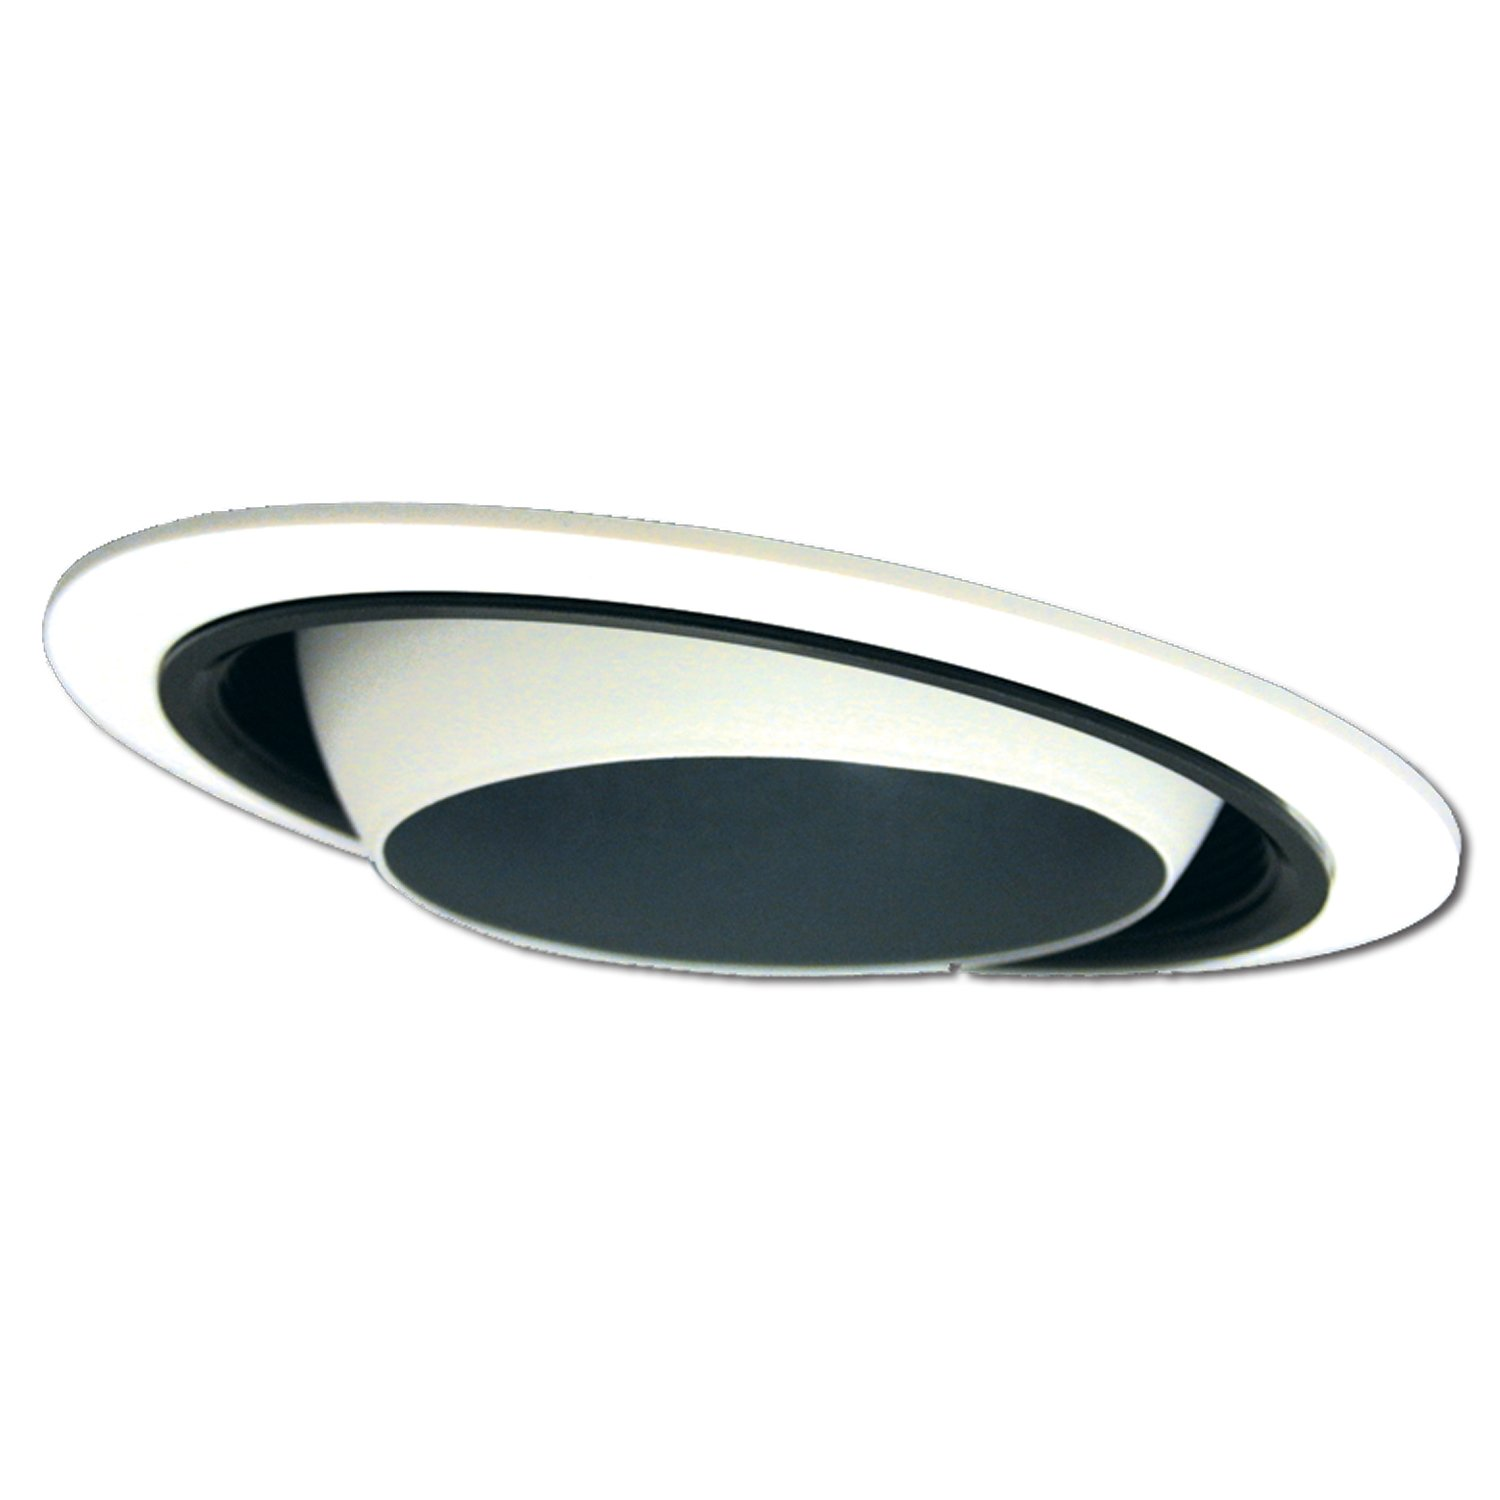 HALO Recessed 420P 6-Inch Regressed Trim with Eyeball and Black Baffle, White